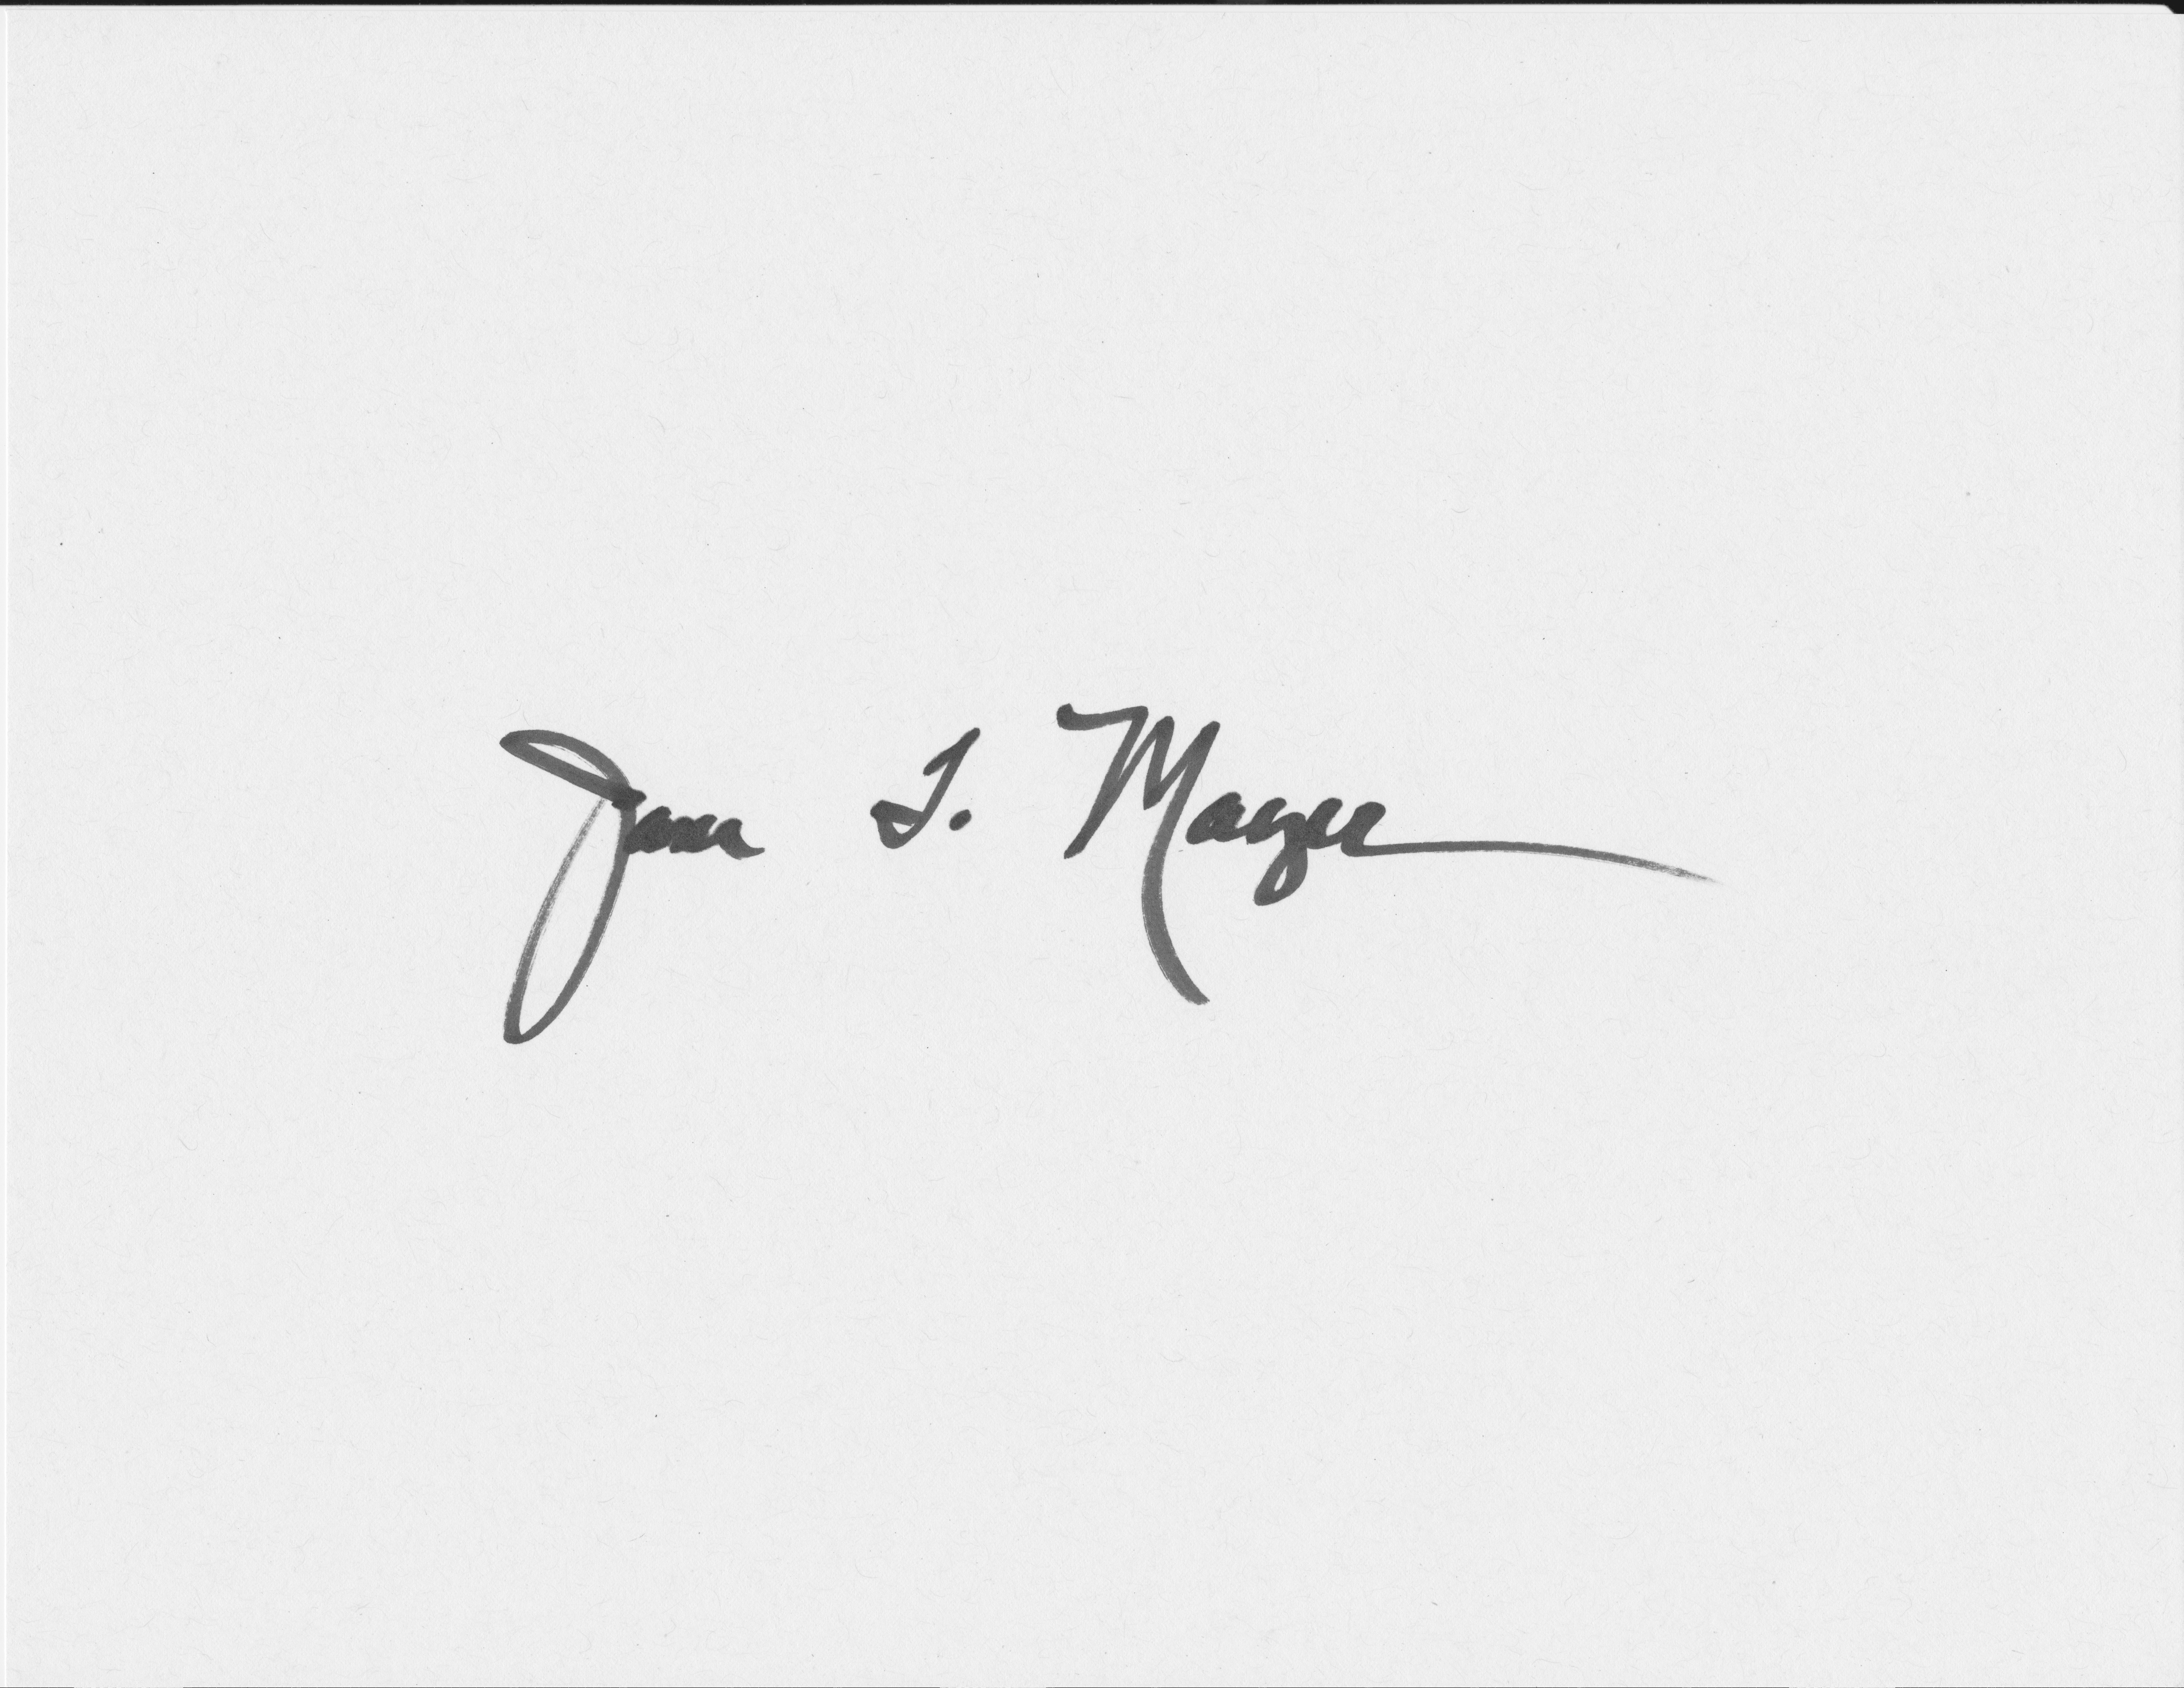 Jane Mayer's Signature